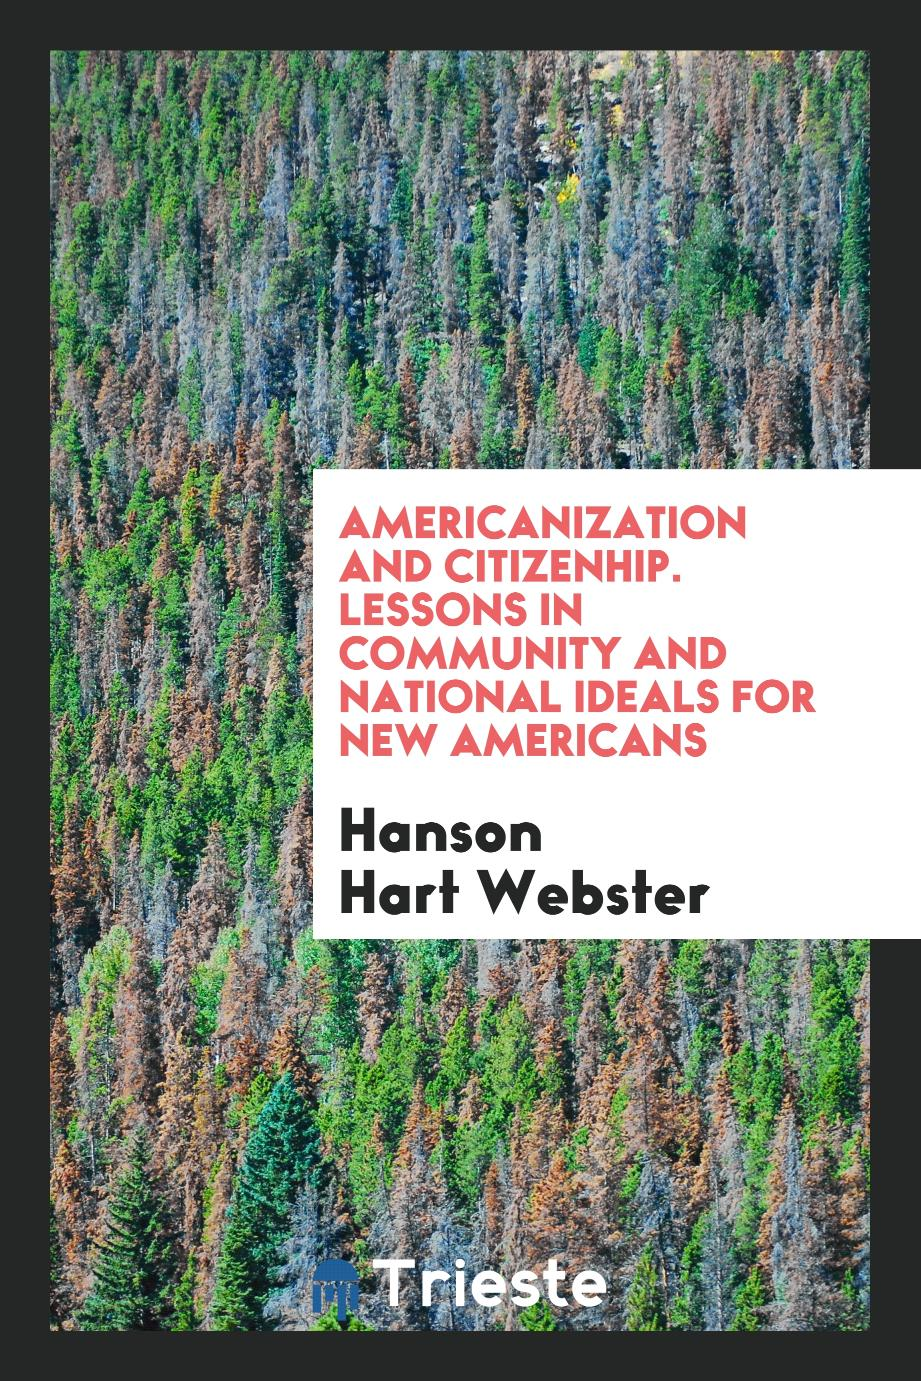 Americanization and Citizenhip. Lessons in Community and National Ideals for New Americans